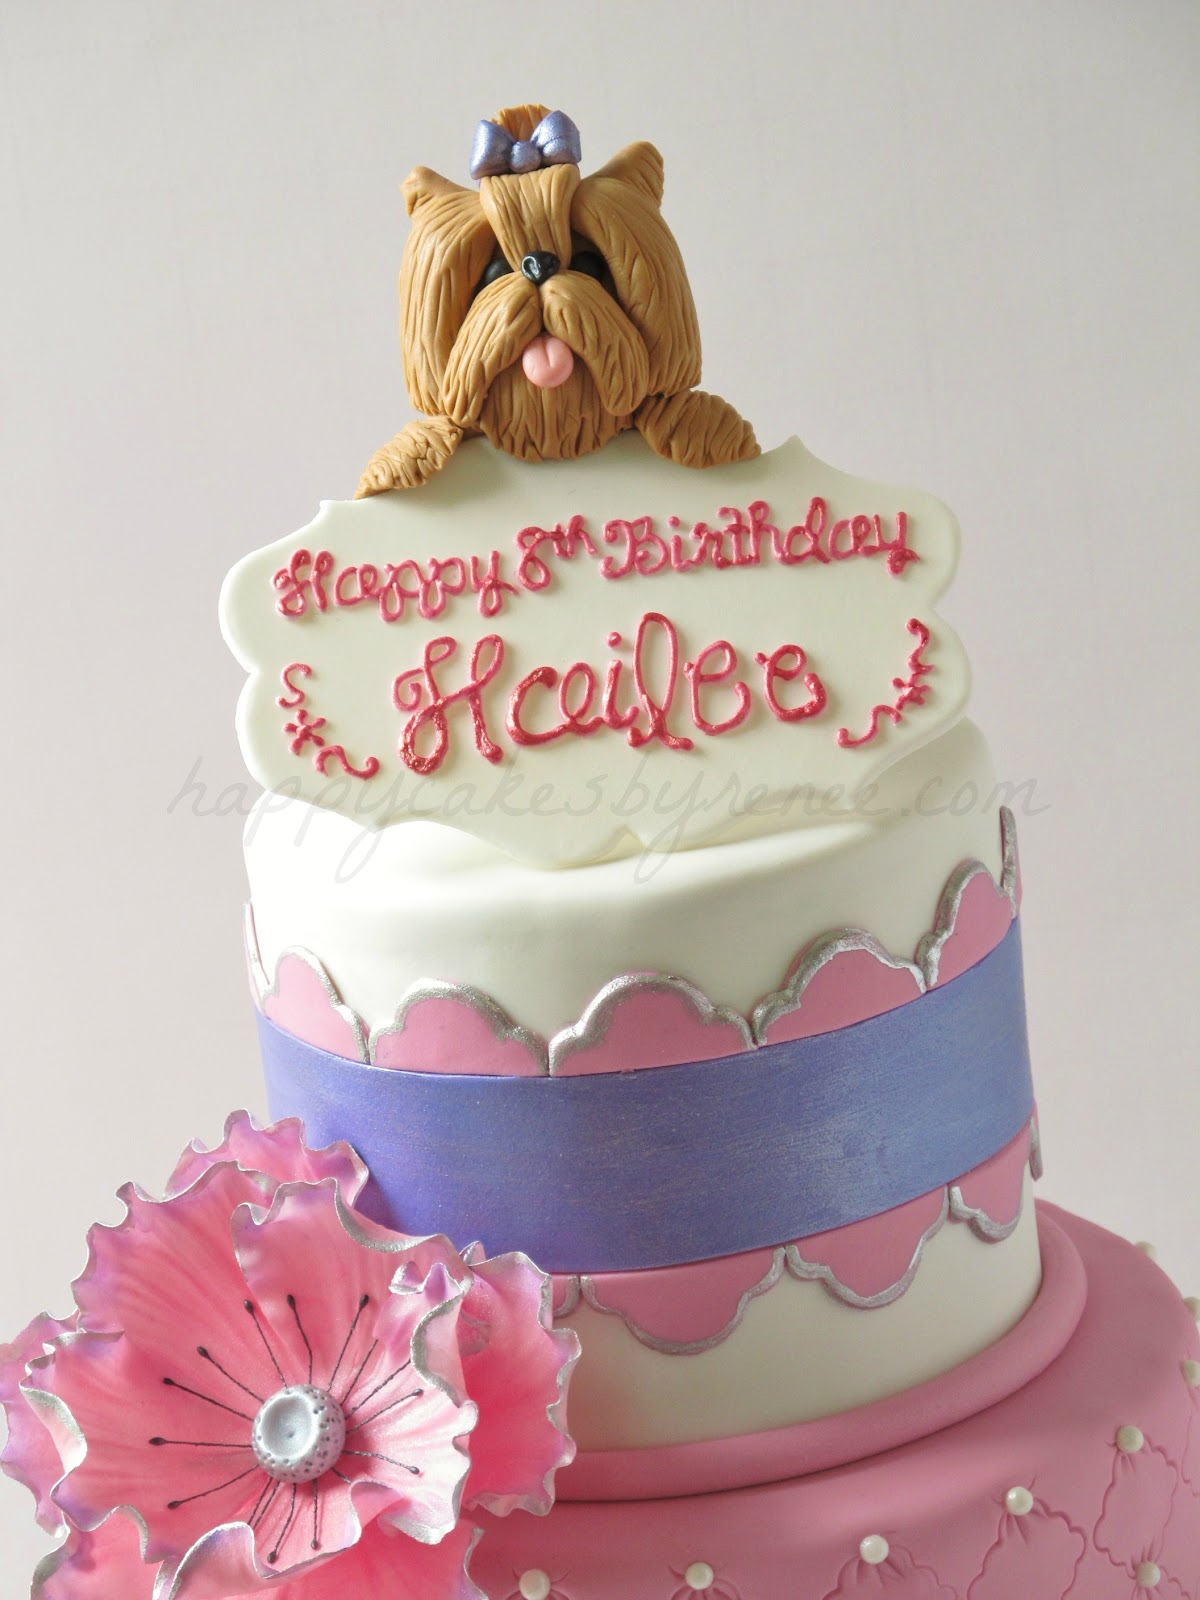 Icing For Dog Birthday Cake Gallery Birthday Cake With Candles